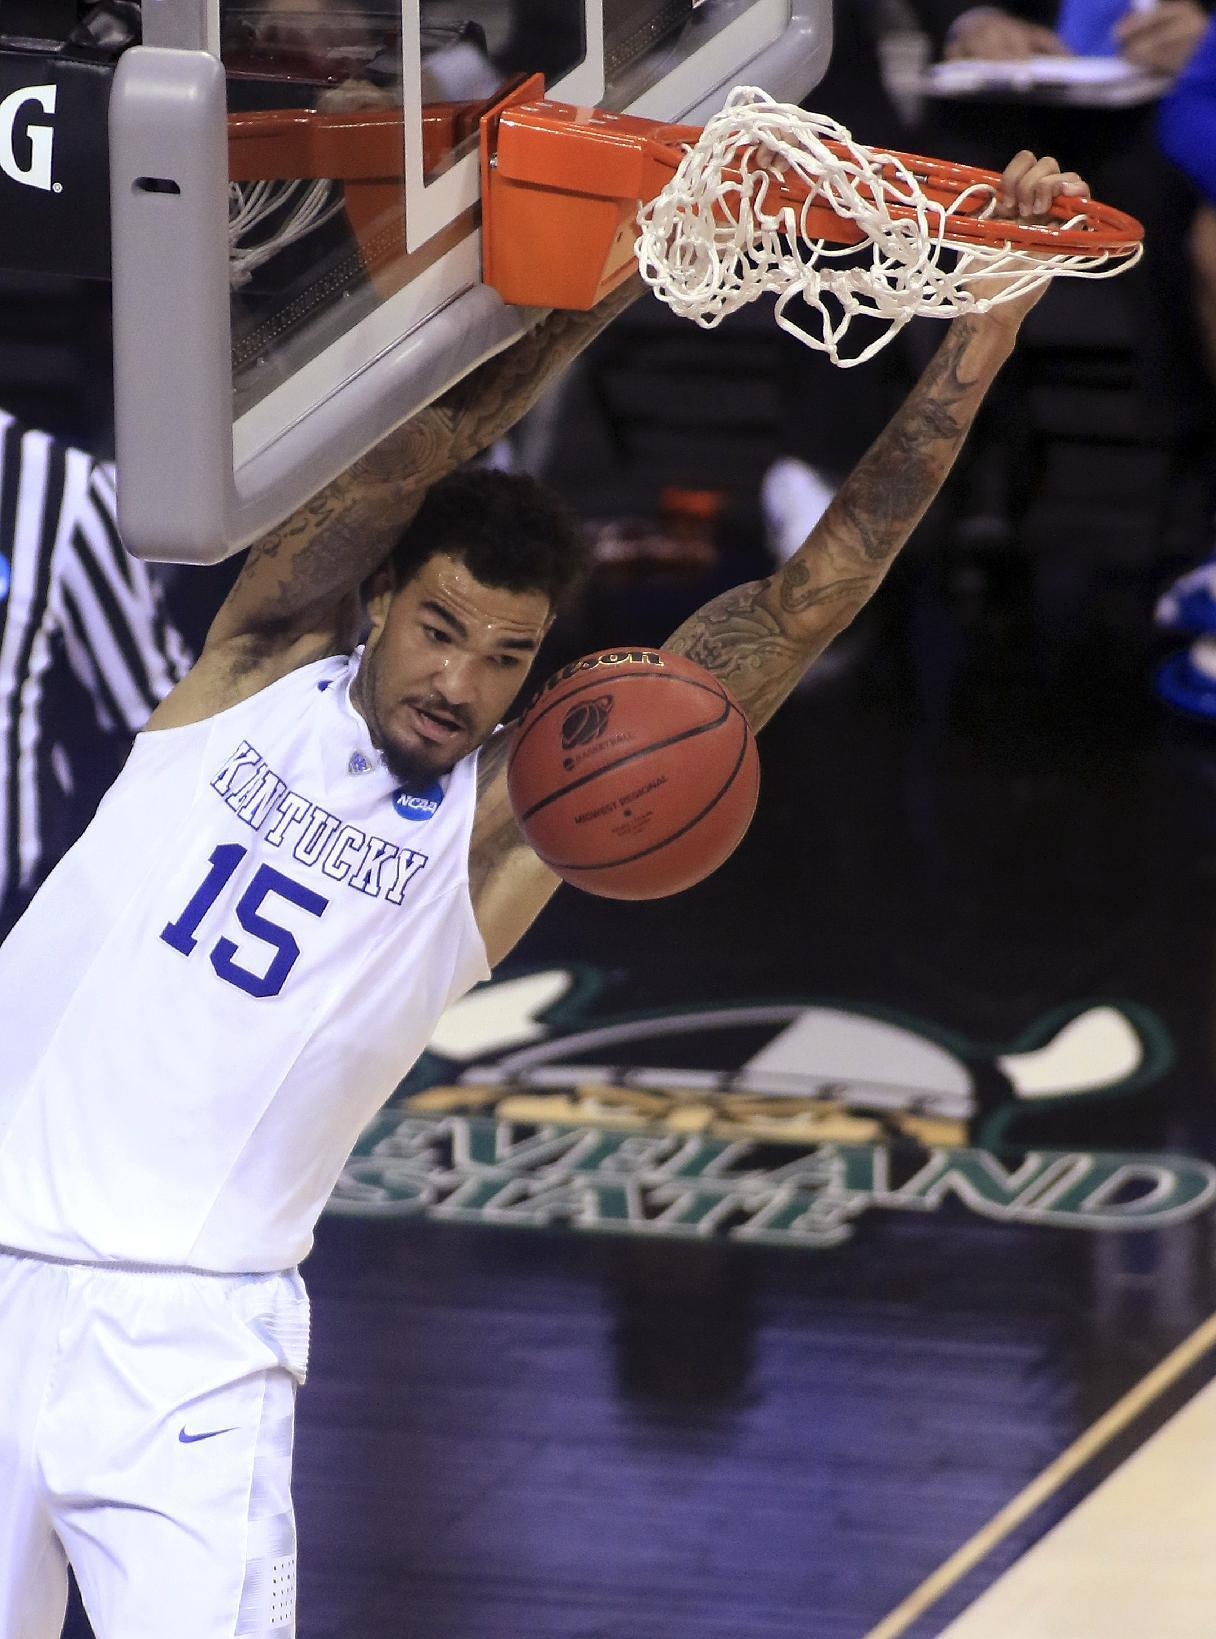 Confident Cauley-Stein thriving in mentor role for Wildcats